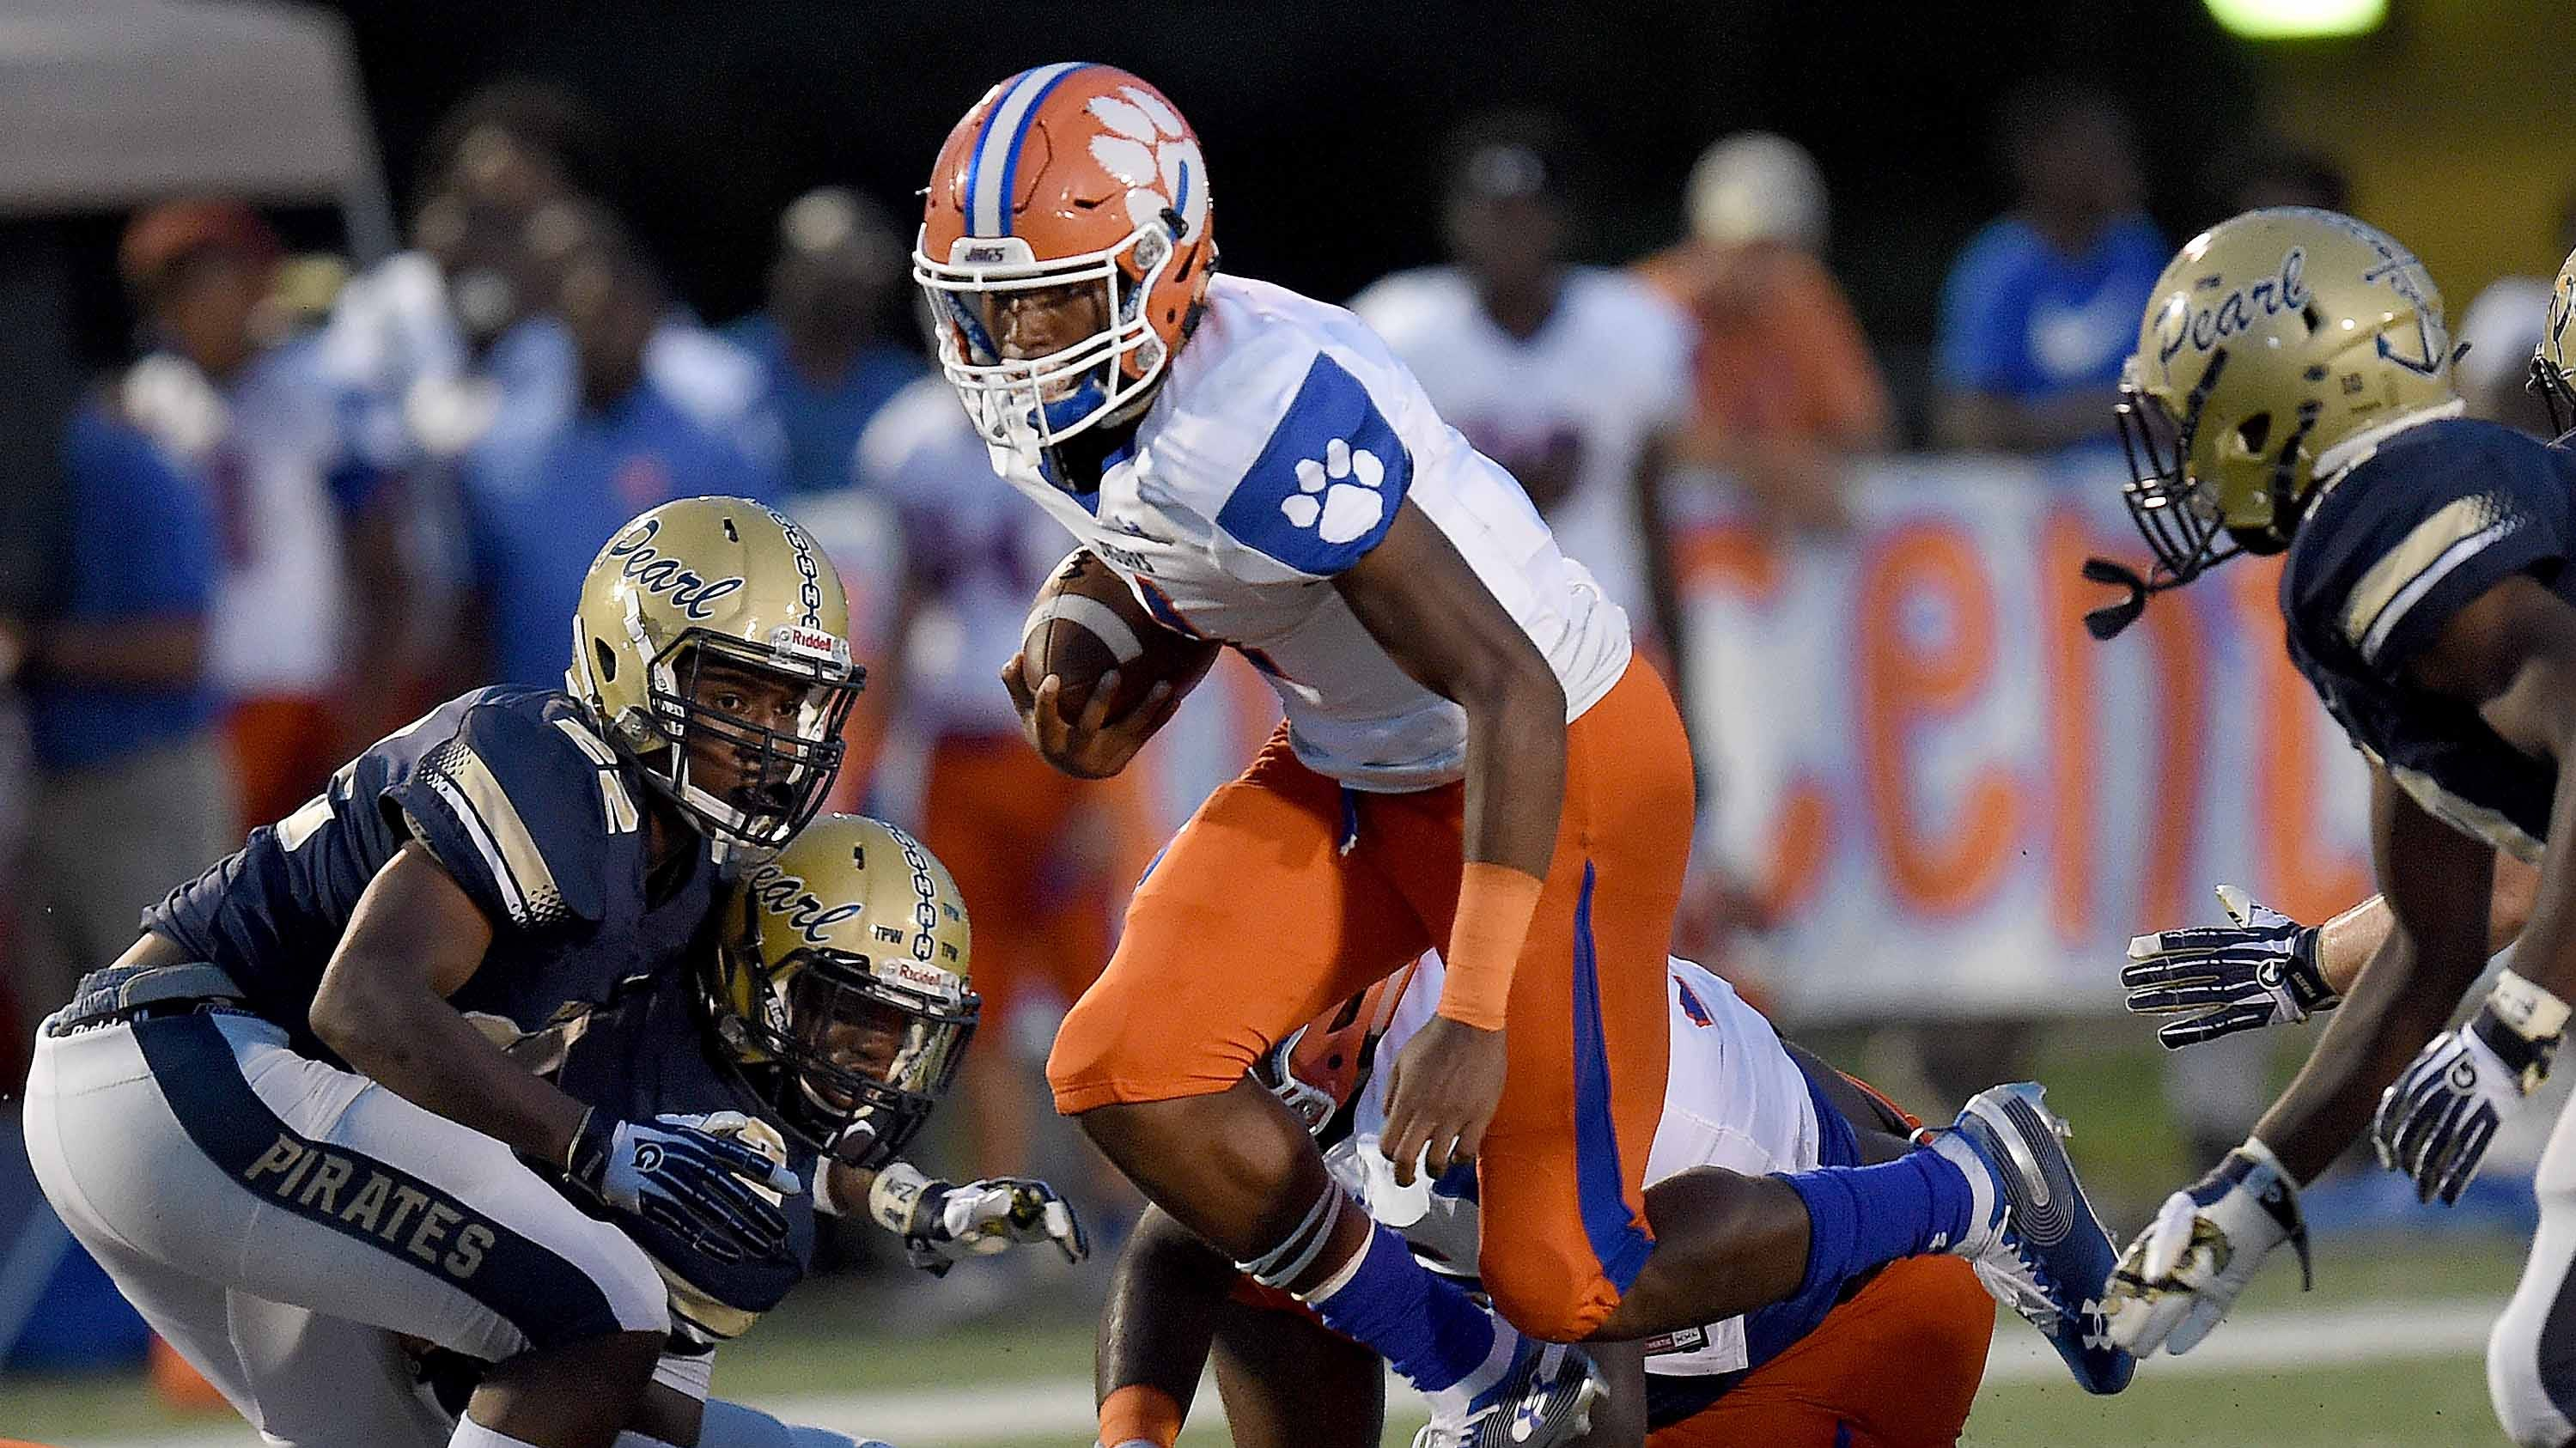 Jimmy Holiday Leads Madison Central Win Over Pearl